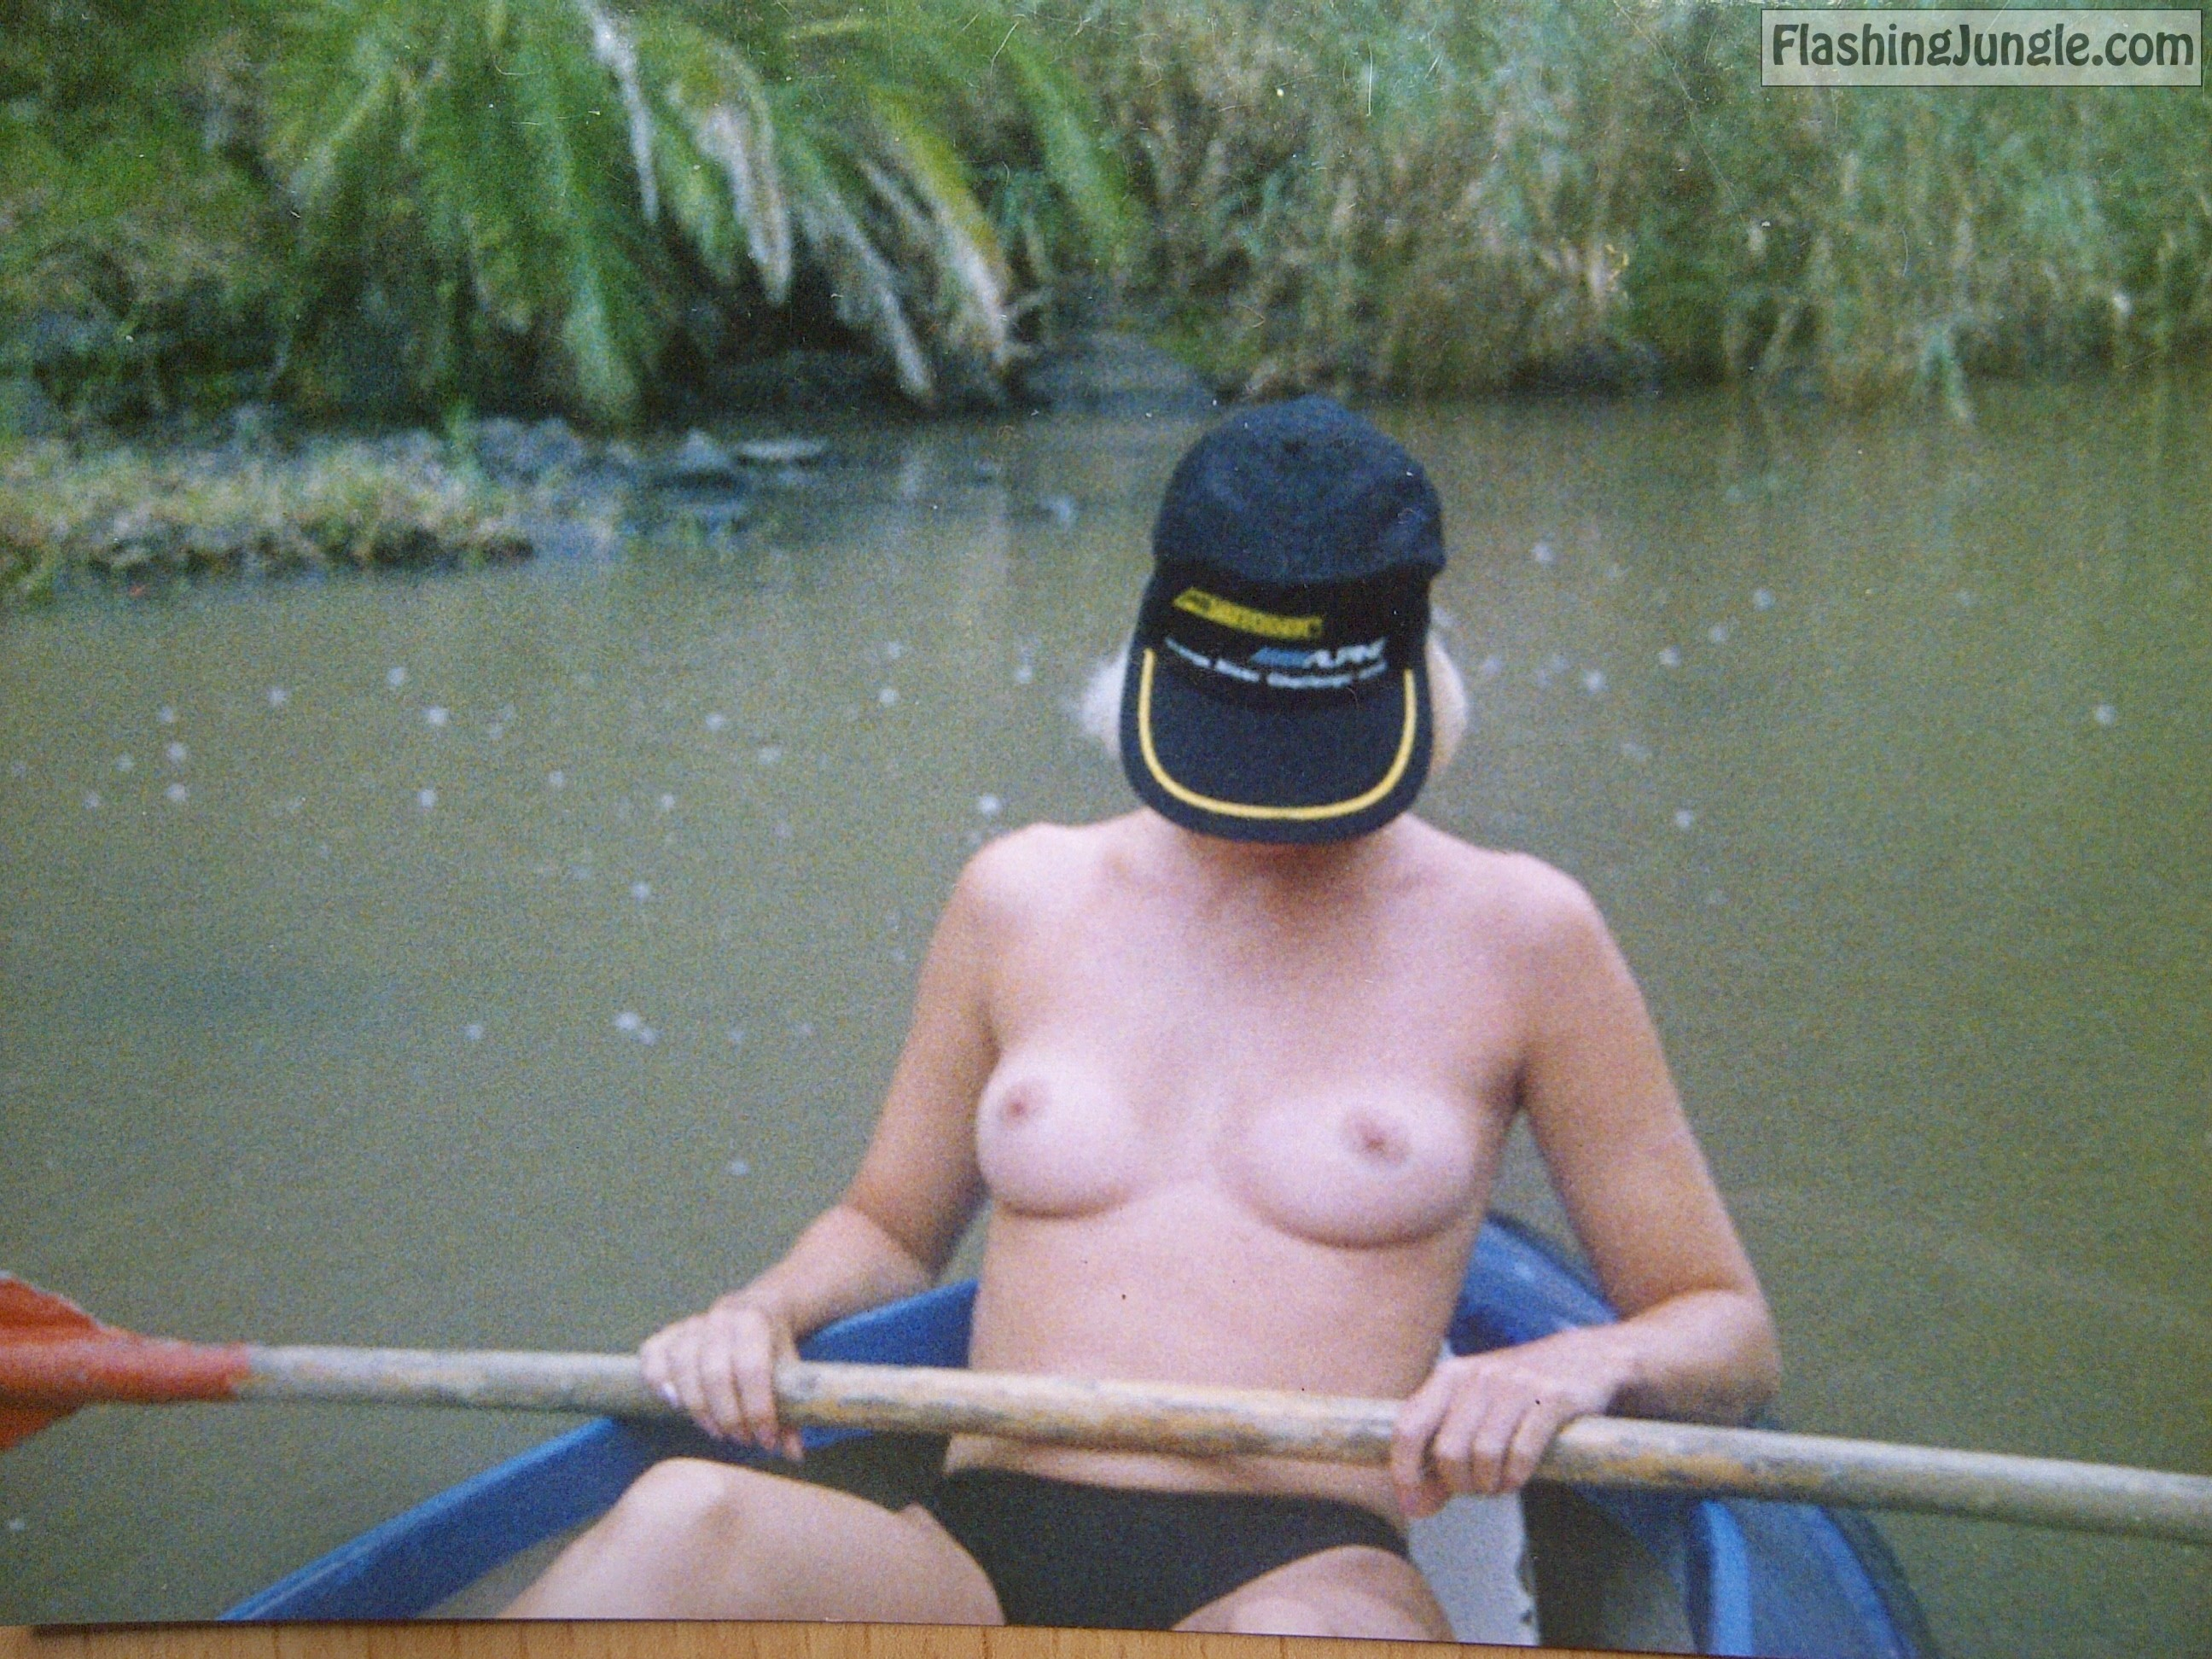 Very shy wife topless in boat real nudity public nudity public flashing milf pics boobs flash